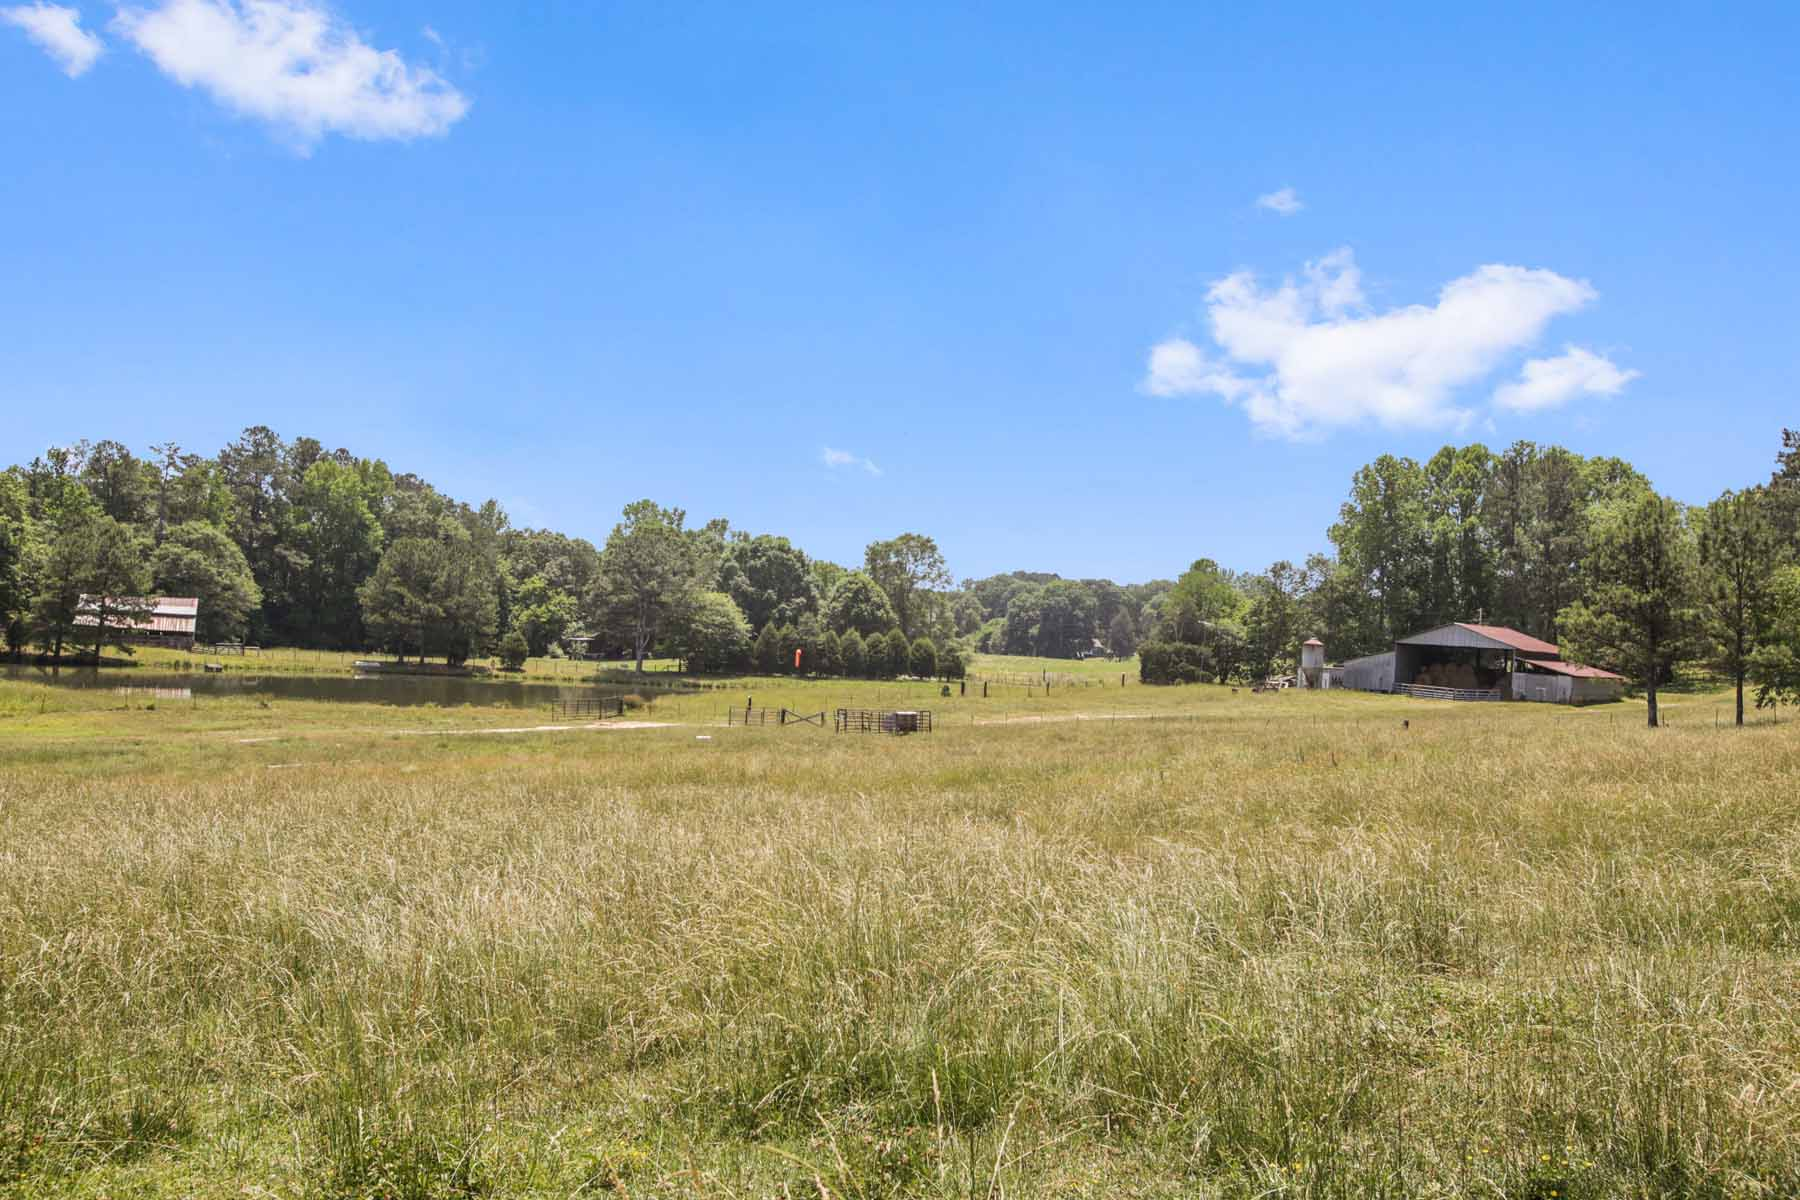 Terreno por un Venta en Gorgeous Acreage with Pond, Stream, and Several Build Sites 7770 Jones Ferry Road, Chattahoochee Hills, Georgia 30268 Estados Unidos